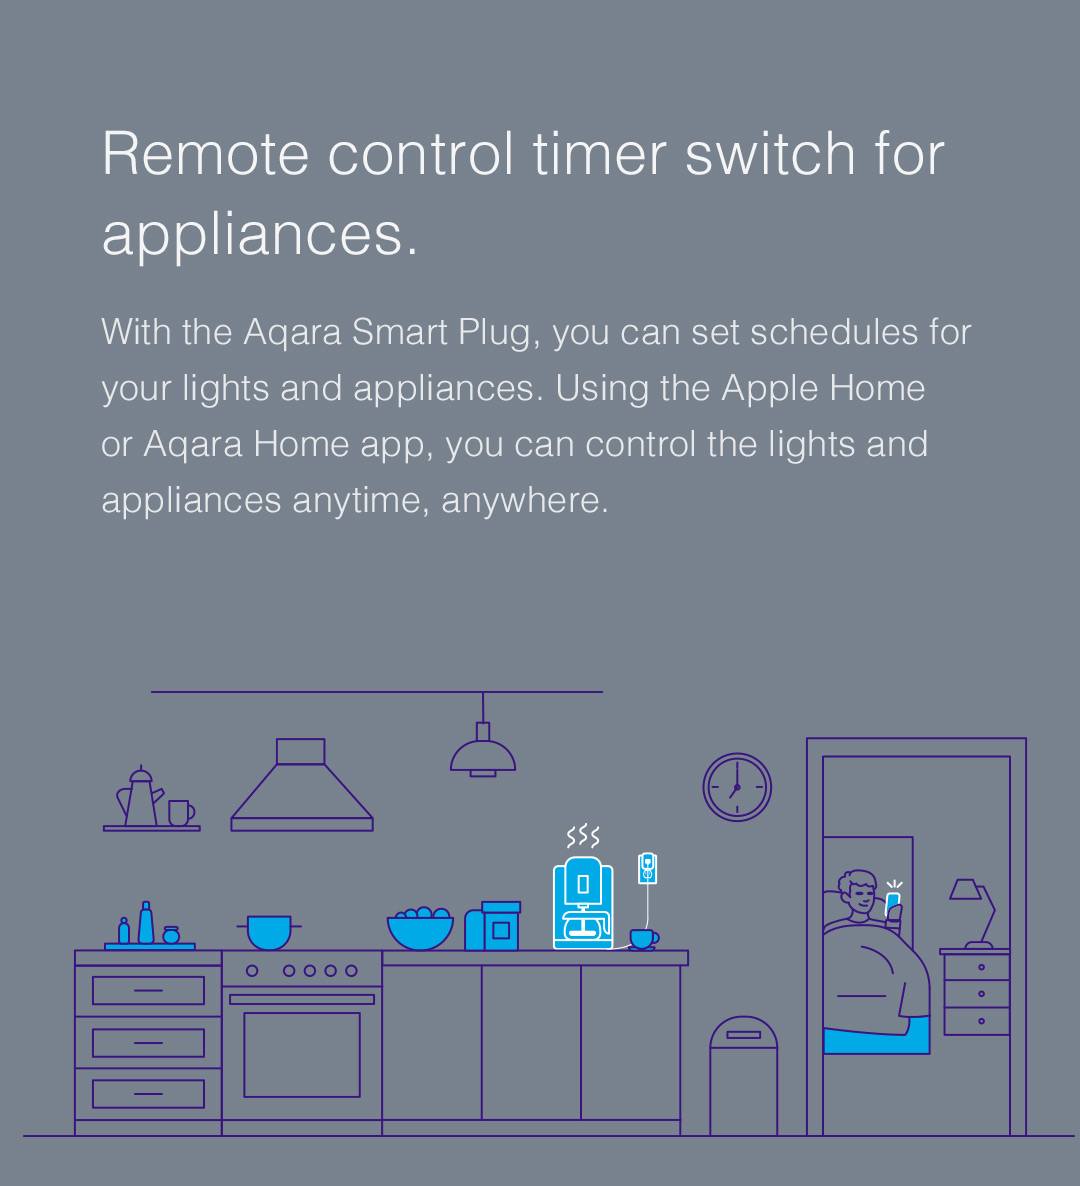 With Aqara Smart Plug US, you can set schedules for your lights and appliances.